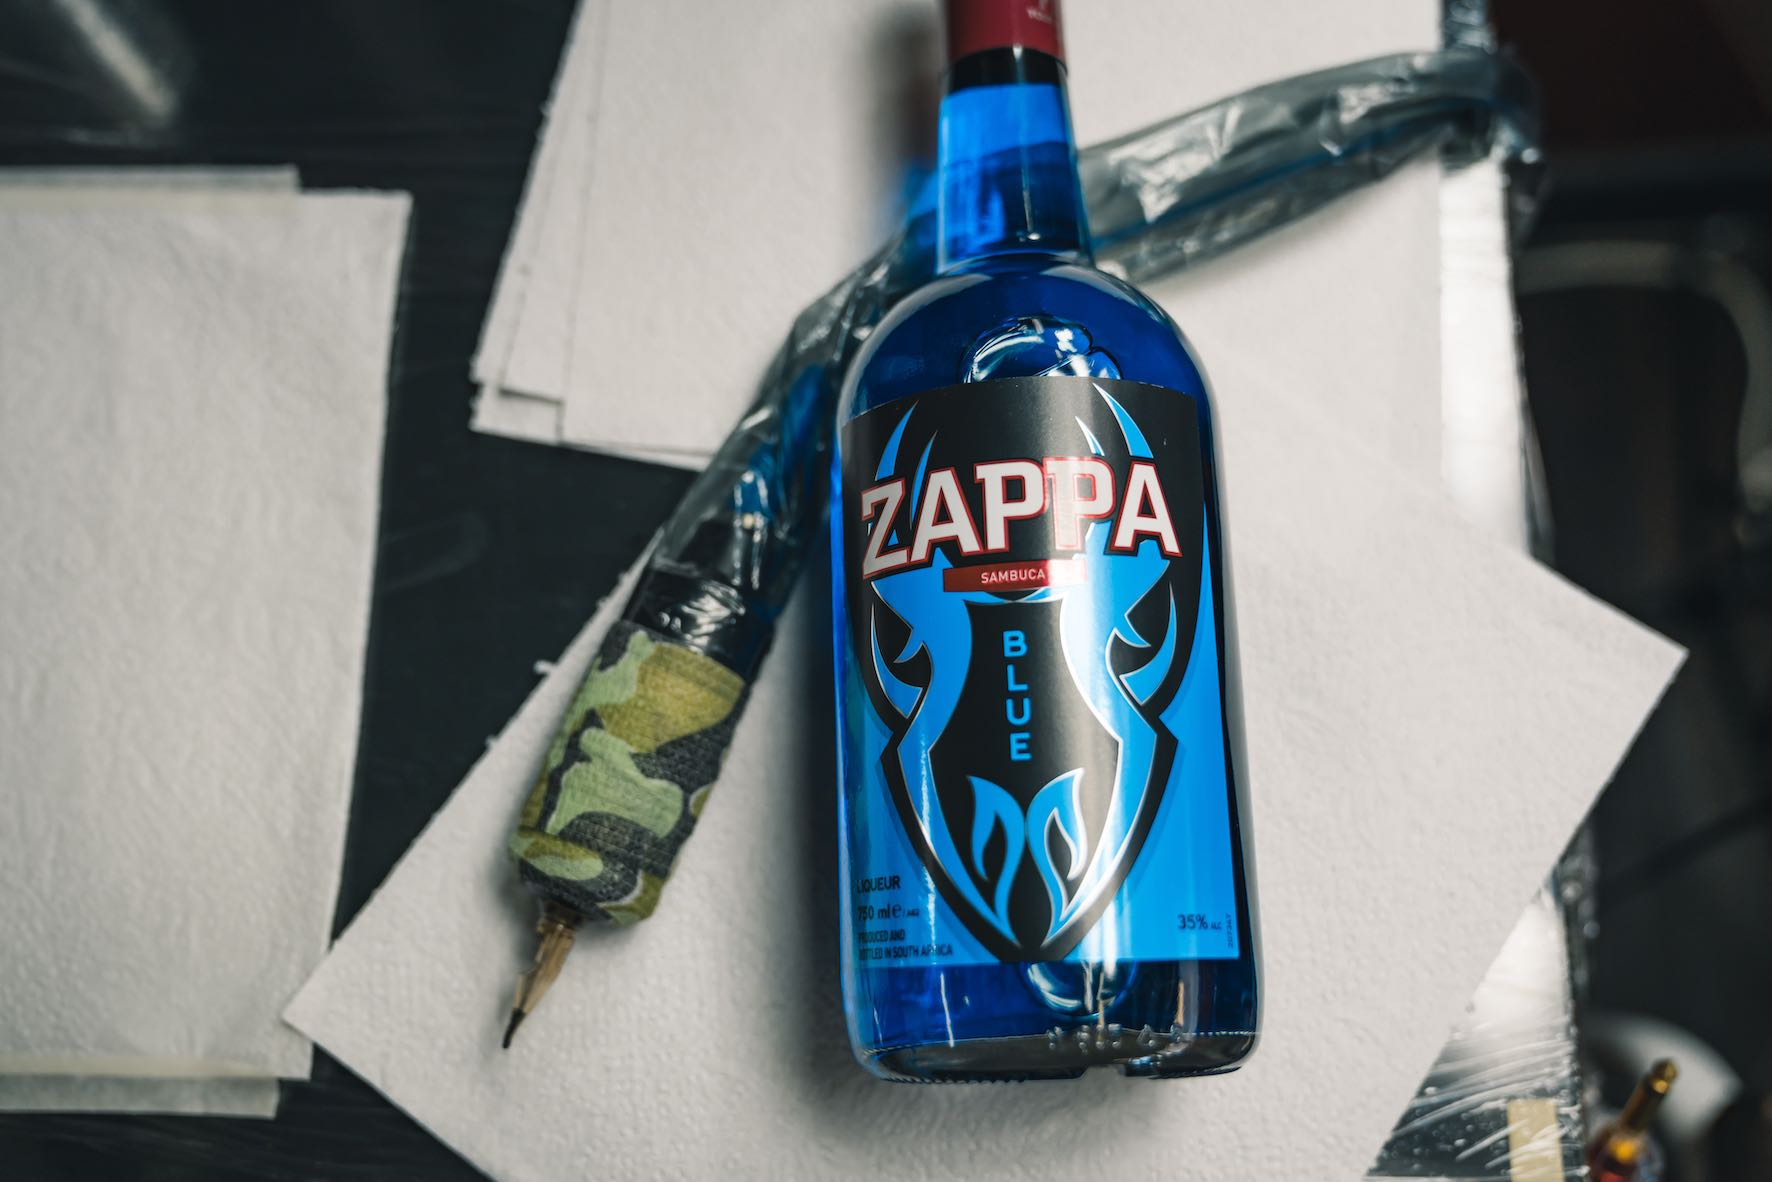 Our Weekly Tattoo Artist features brought to you by Zappa Sambuca